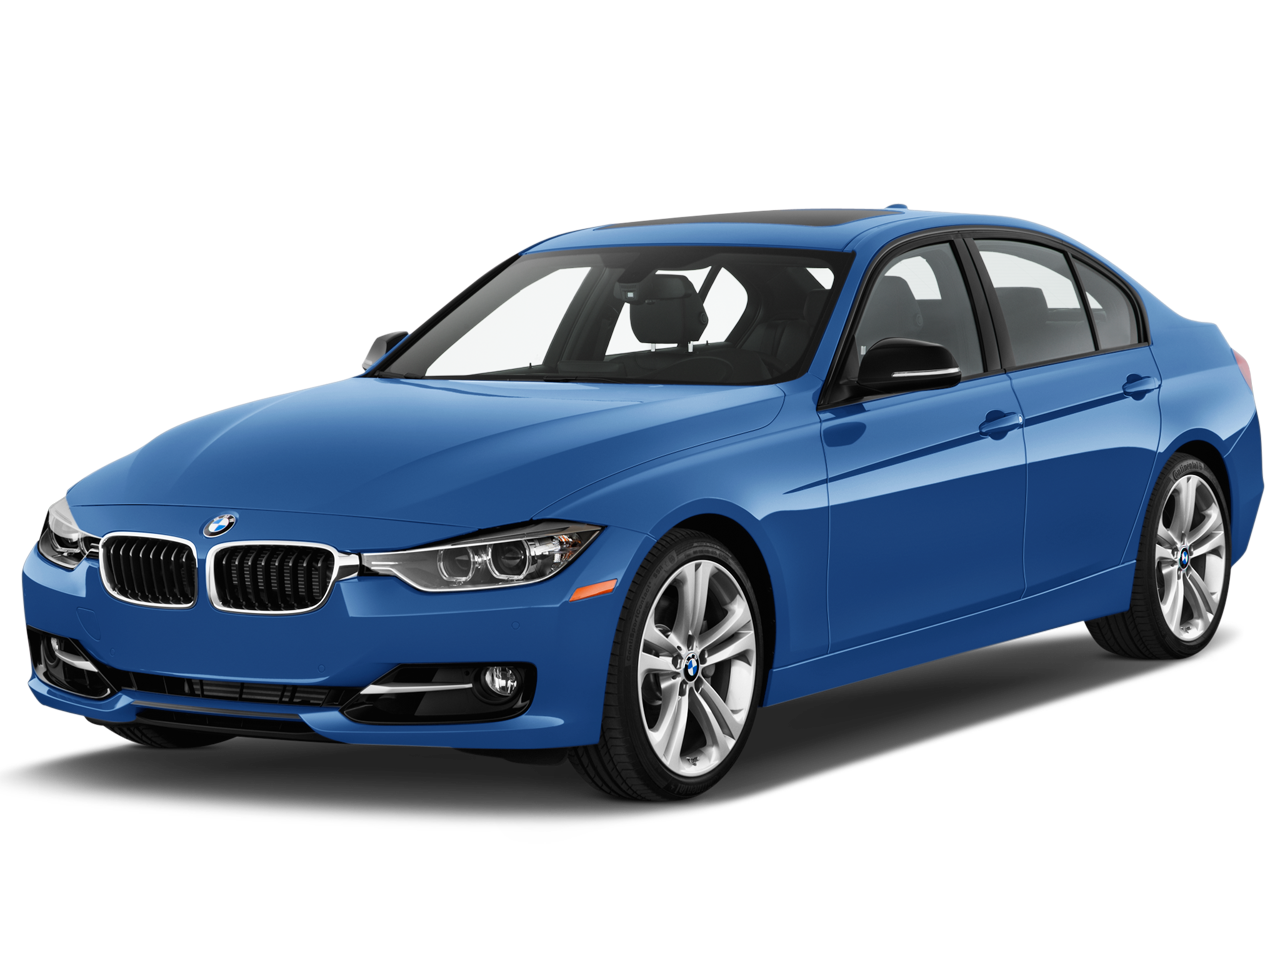 Bmw png. Images free download blue